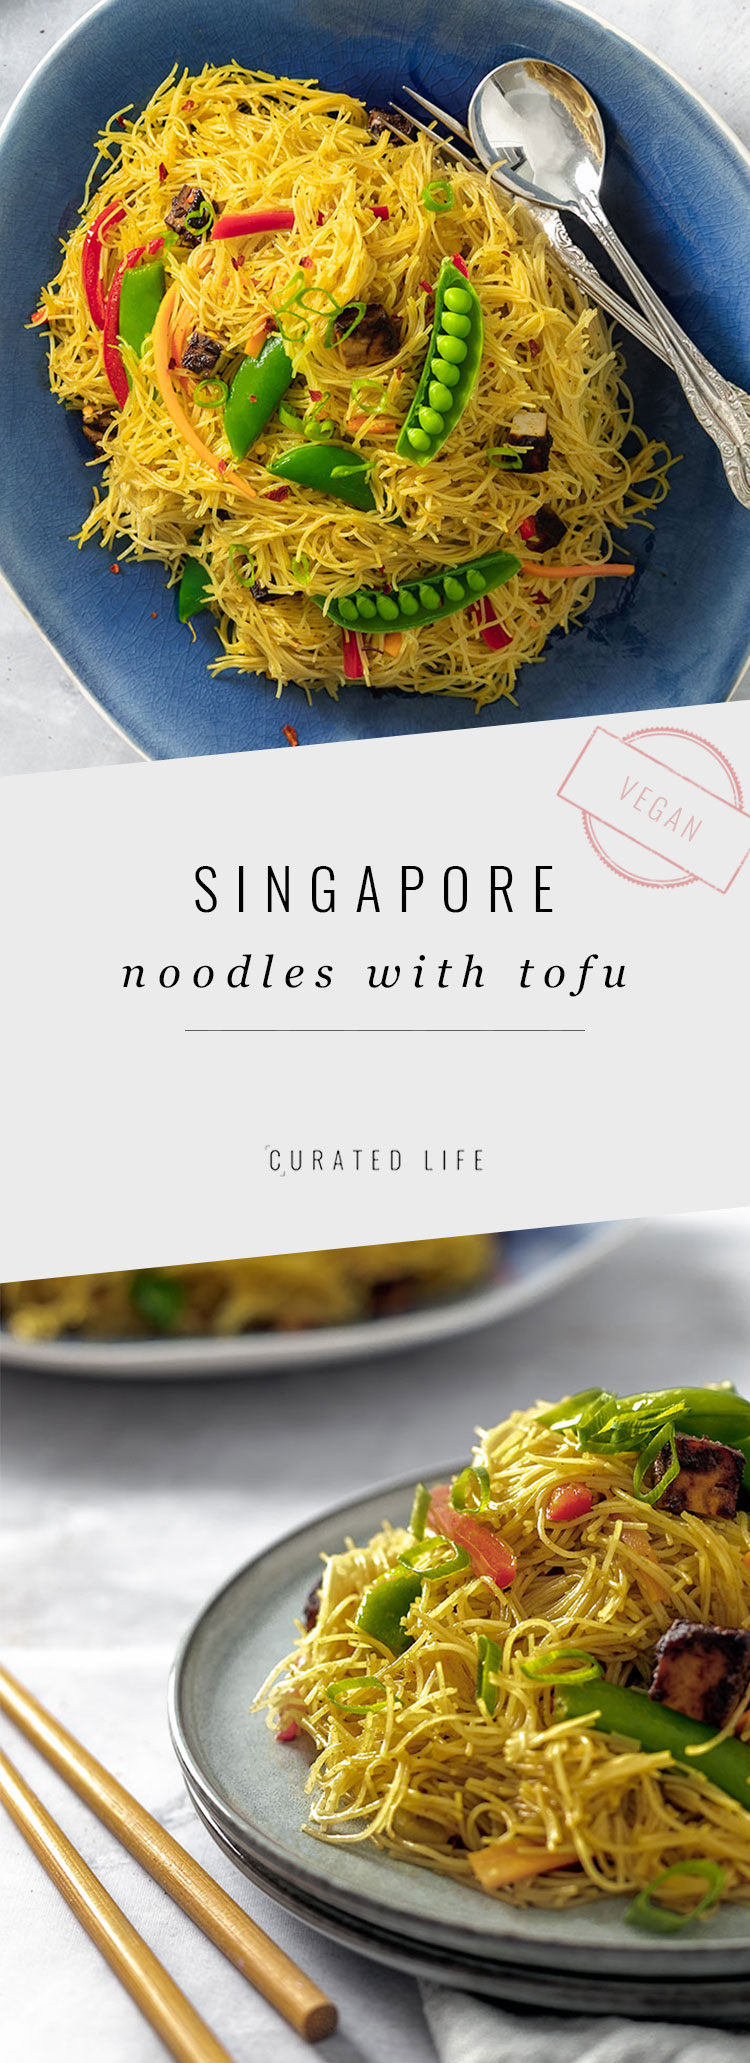 Mouth-watering Singapore Noodles Stir fry with Chinese BBQ Tofu and an easy curry sauce. Prepared in under 30-minutes, this dish is perfect for dinner!  #singapore #noodles #easy #vegetarian #curry #authentic #recipe #vegan #healthy #chinese #sauce #stir-fry